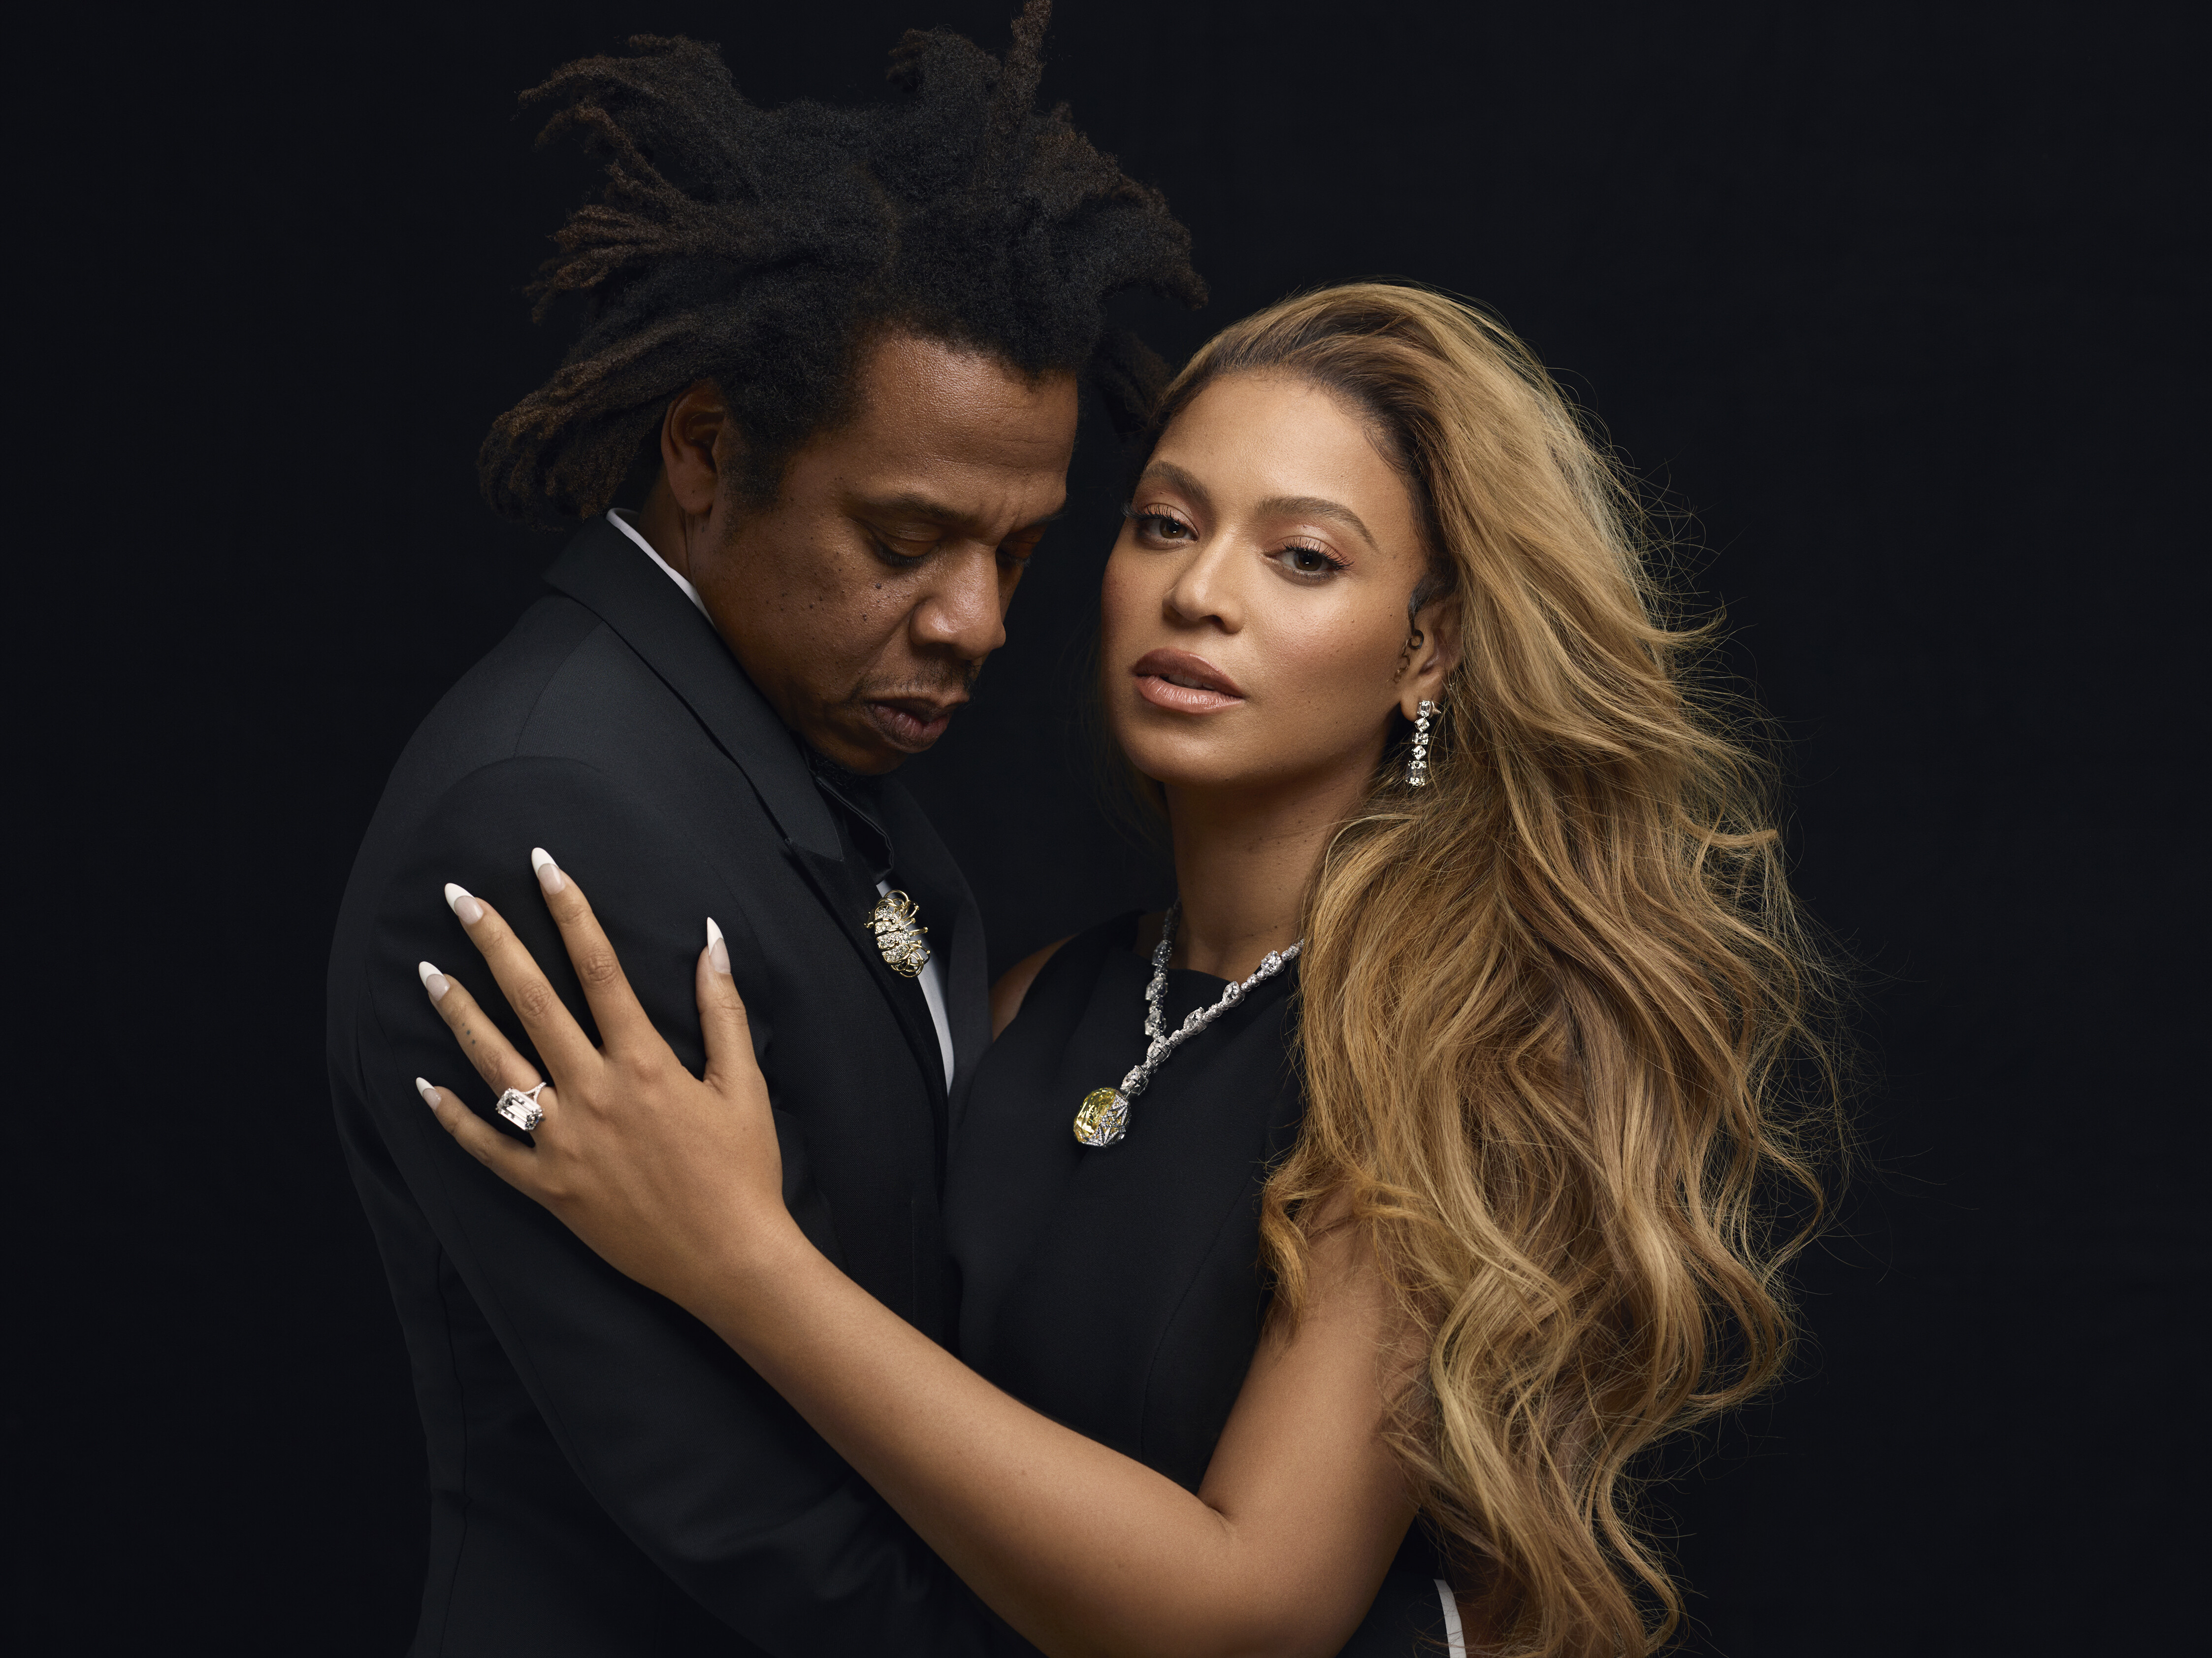 Beyoncé and Jay-Z team with Tiffany & Co. for HBCU scholarships